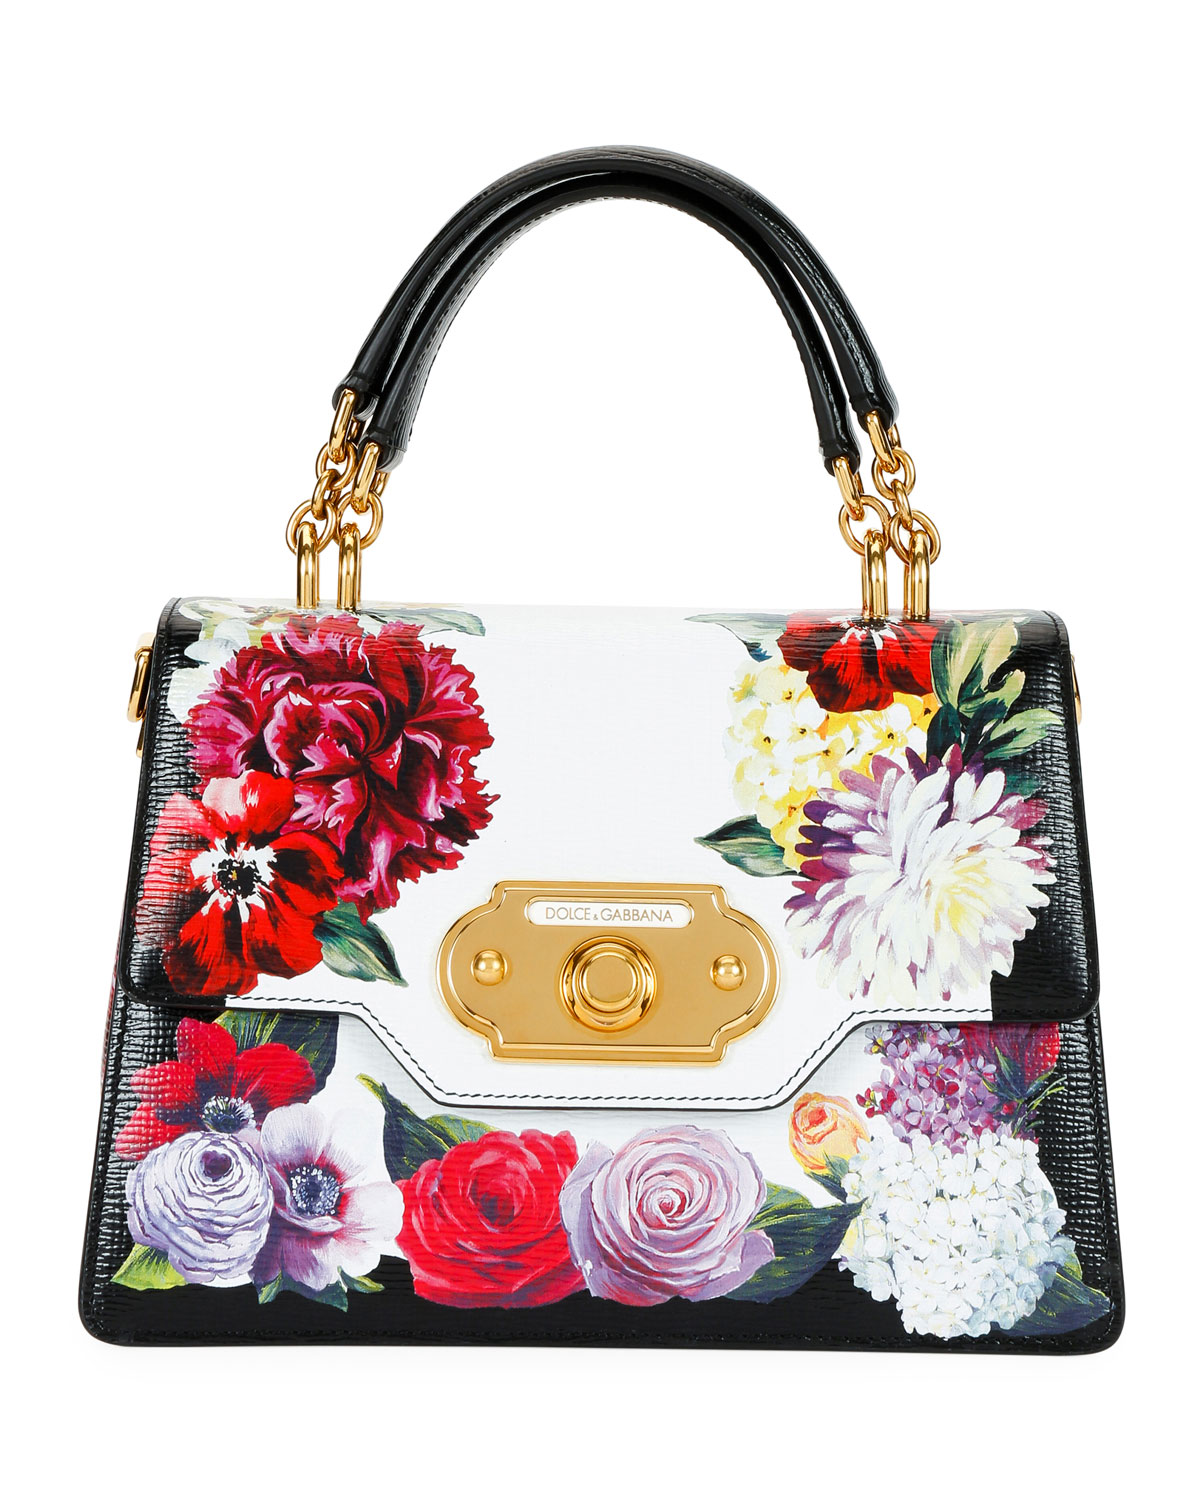 939e2947f5f Dolce & Gabbana Welcome Flower Leather Shoulder Bag   Neiman Marcus